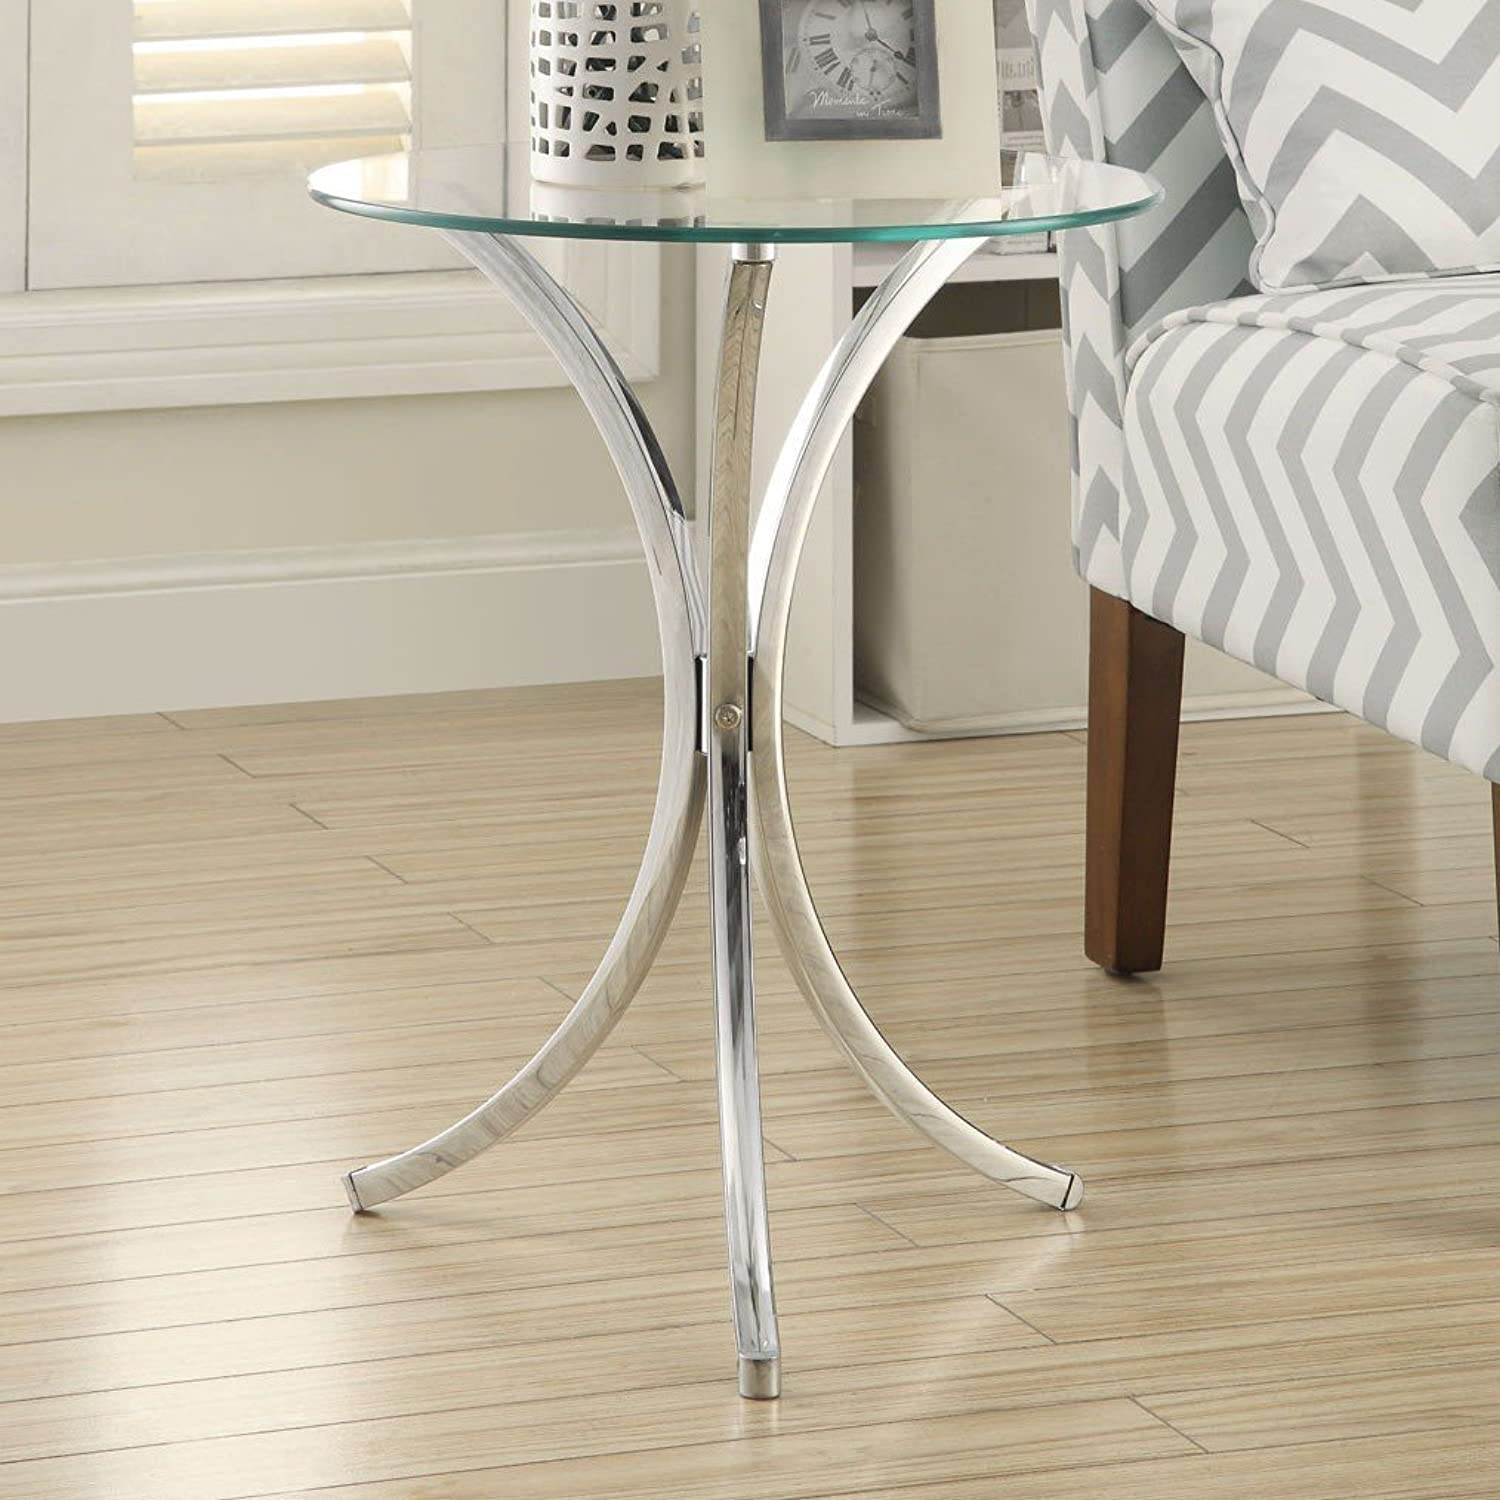 EHomeProducts Glass Top Chrome Base Round Side End Table